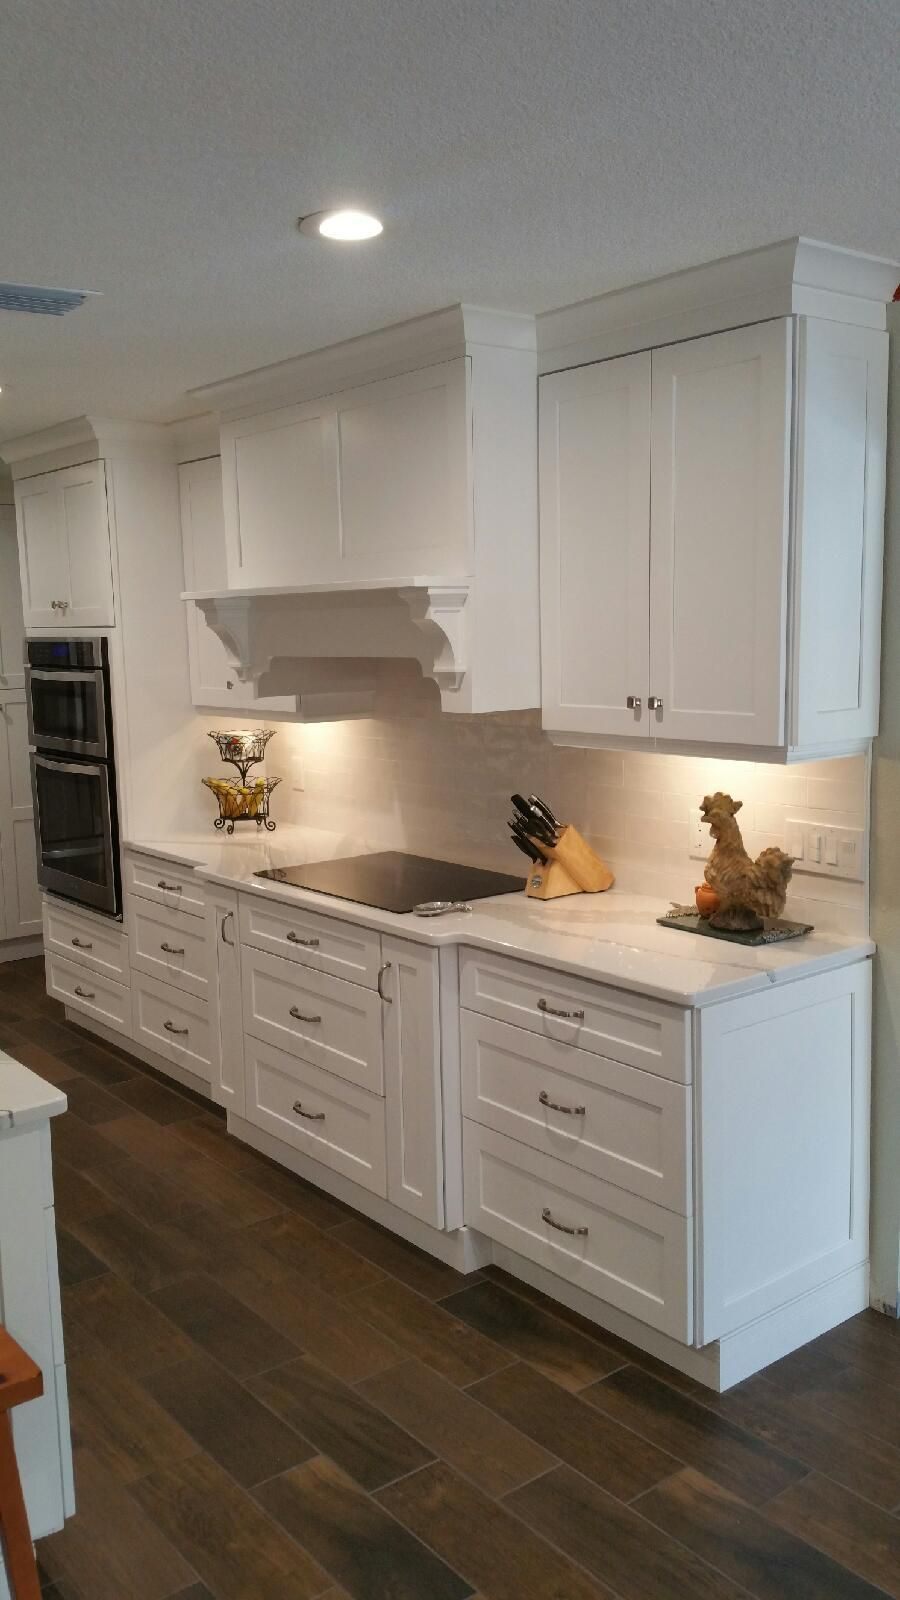 The bohrer kitchen after white shaker cabinetry daltile emblem the bohrer kitchen after white shaker cabinetry daltile emblem 7 x 20 ceramic floor tile cambria quartz countertops in brittanica crossville cafe milk dailygadgetfo Image collections